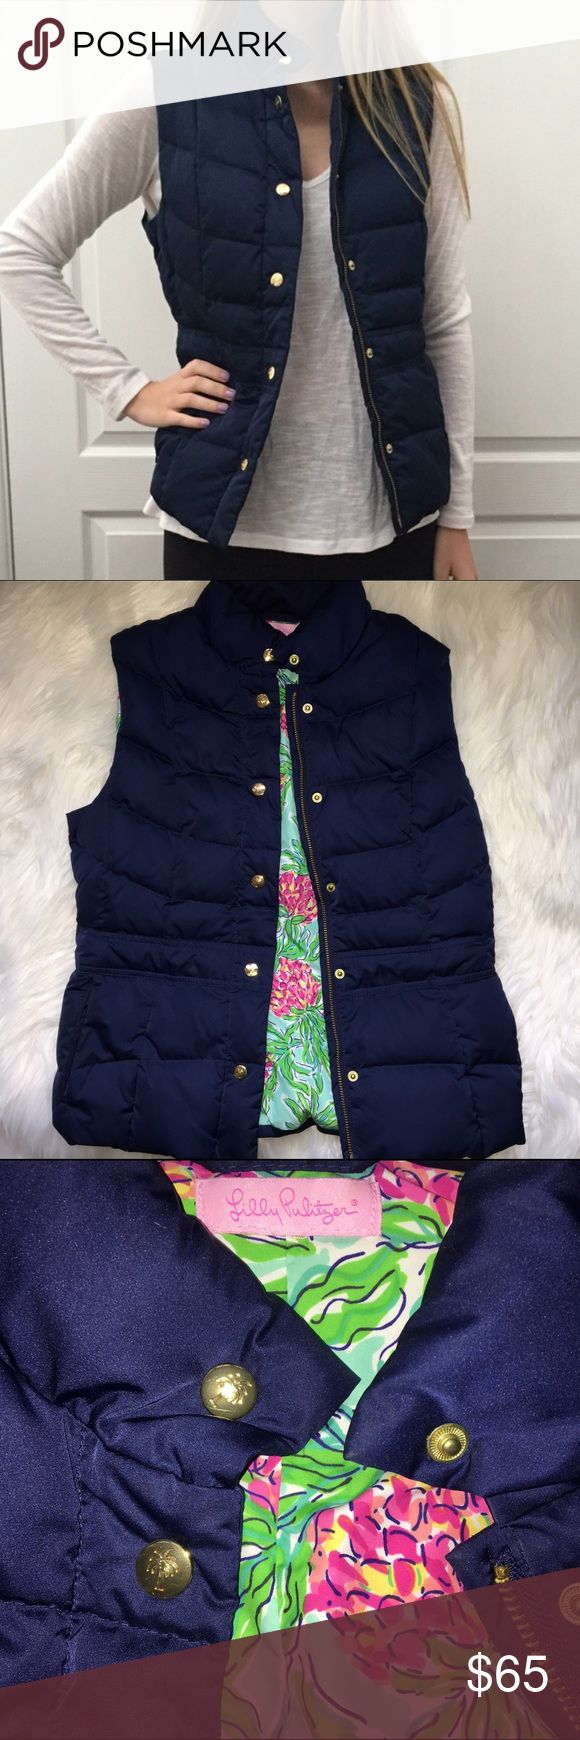 Lilly Pulitzer Navy Blue Vest Size Small In perfect condition Lilly Pulitzer Jackets & Coats Vests